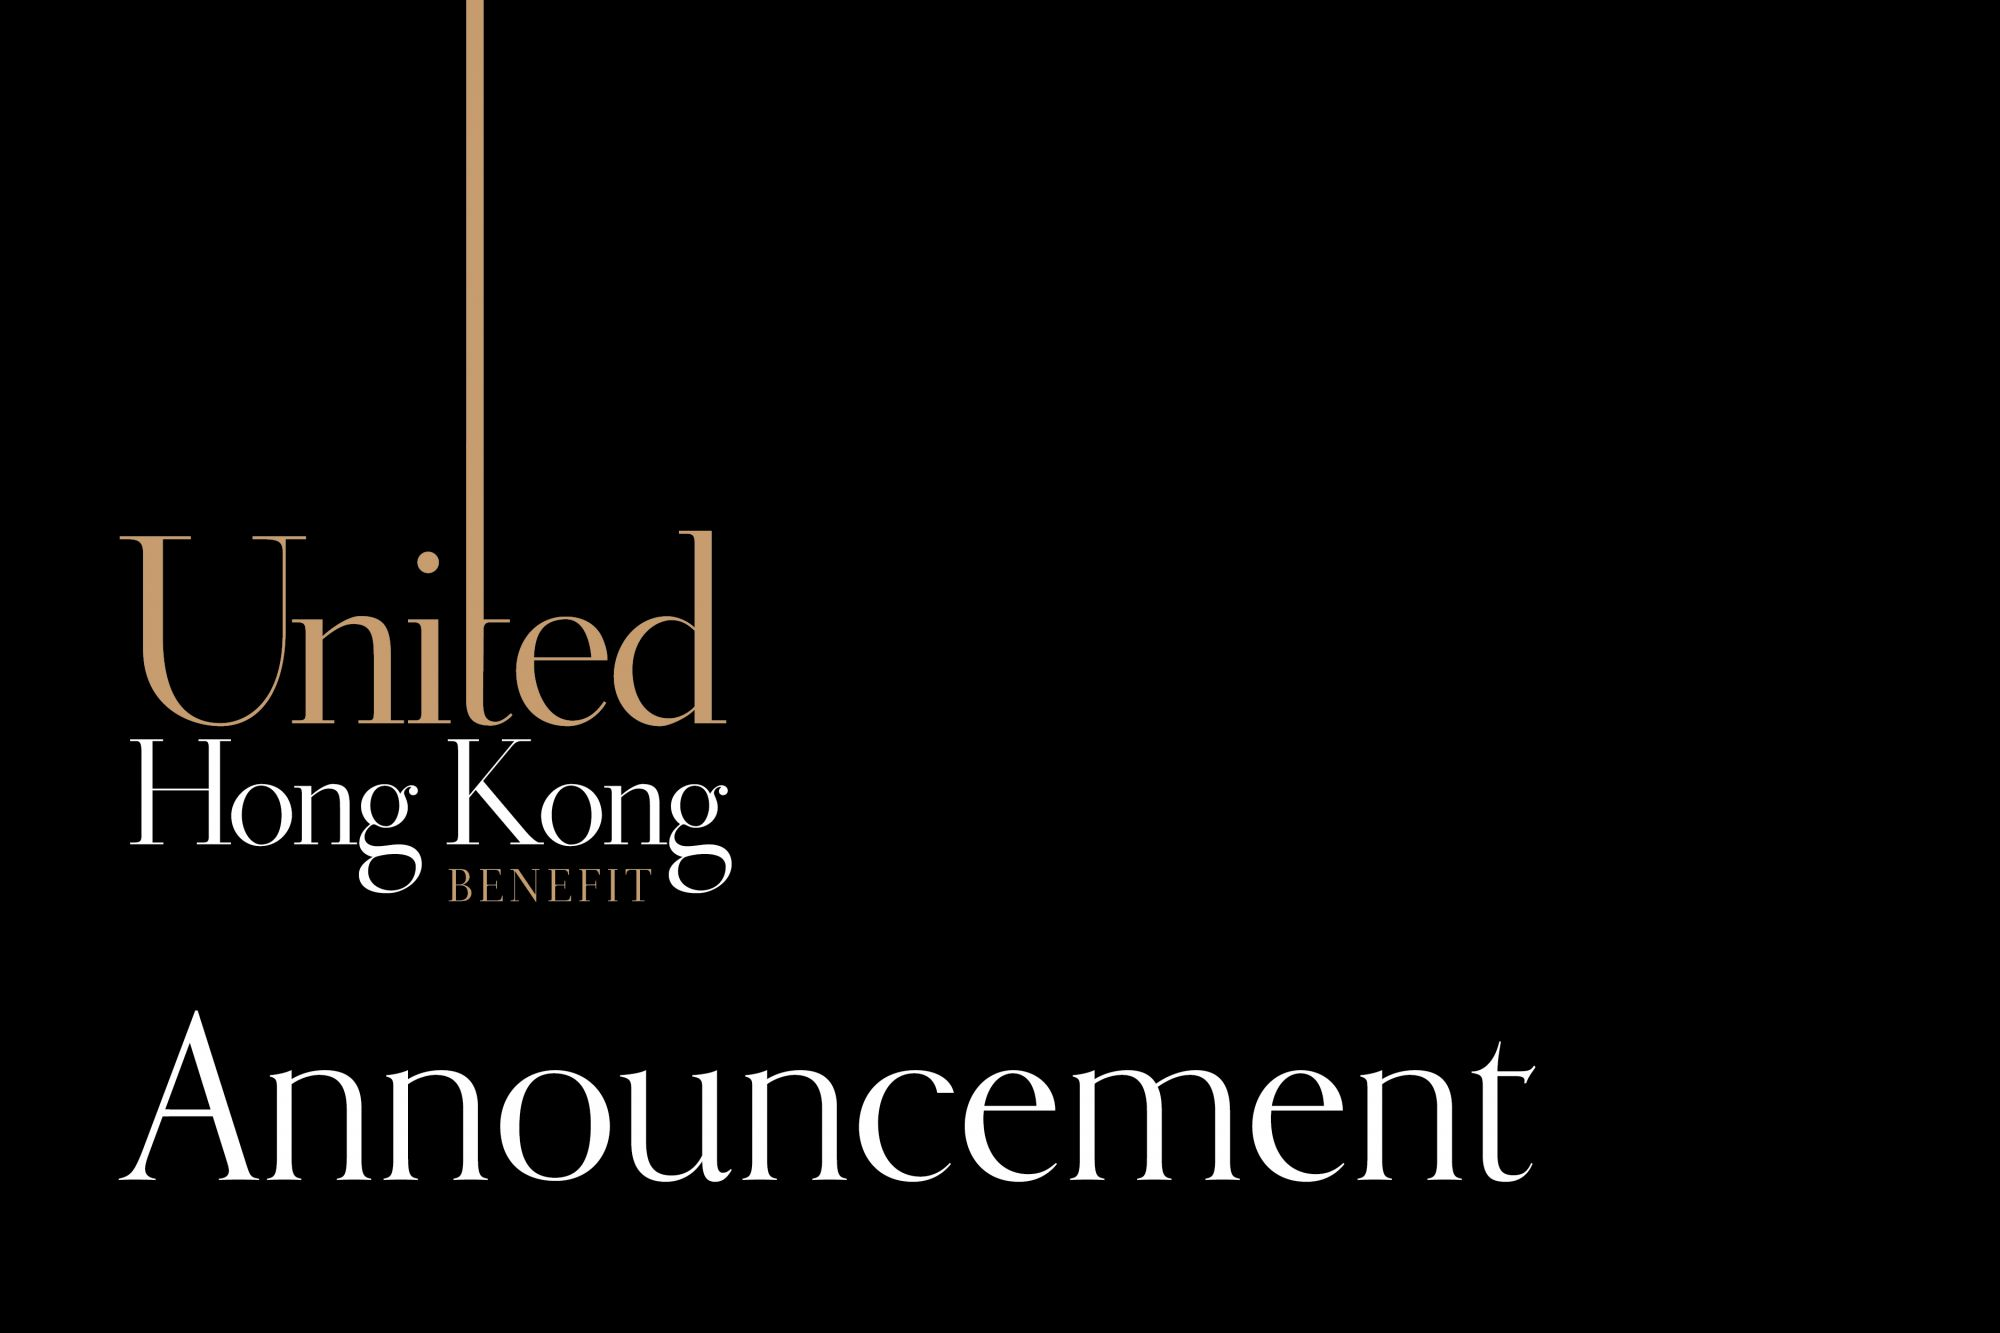 We Have An Important Announcement About The United Hong Kong Benefit